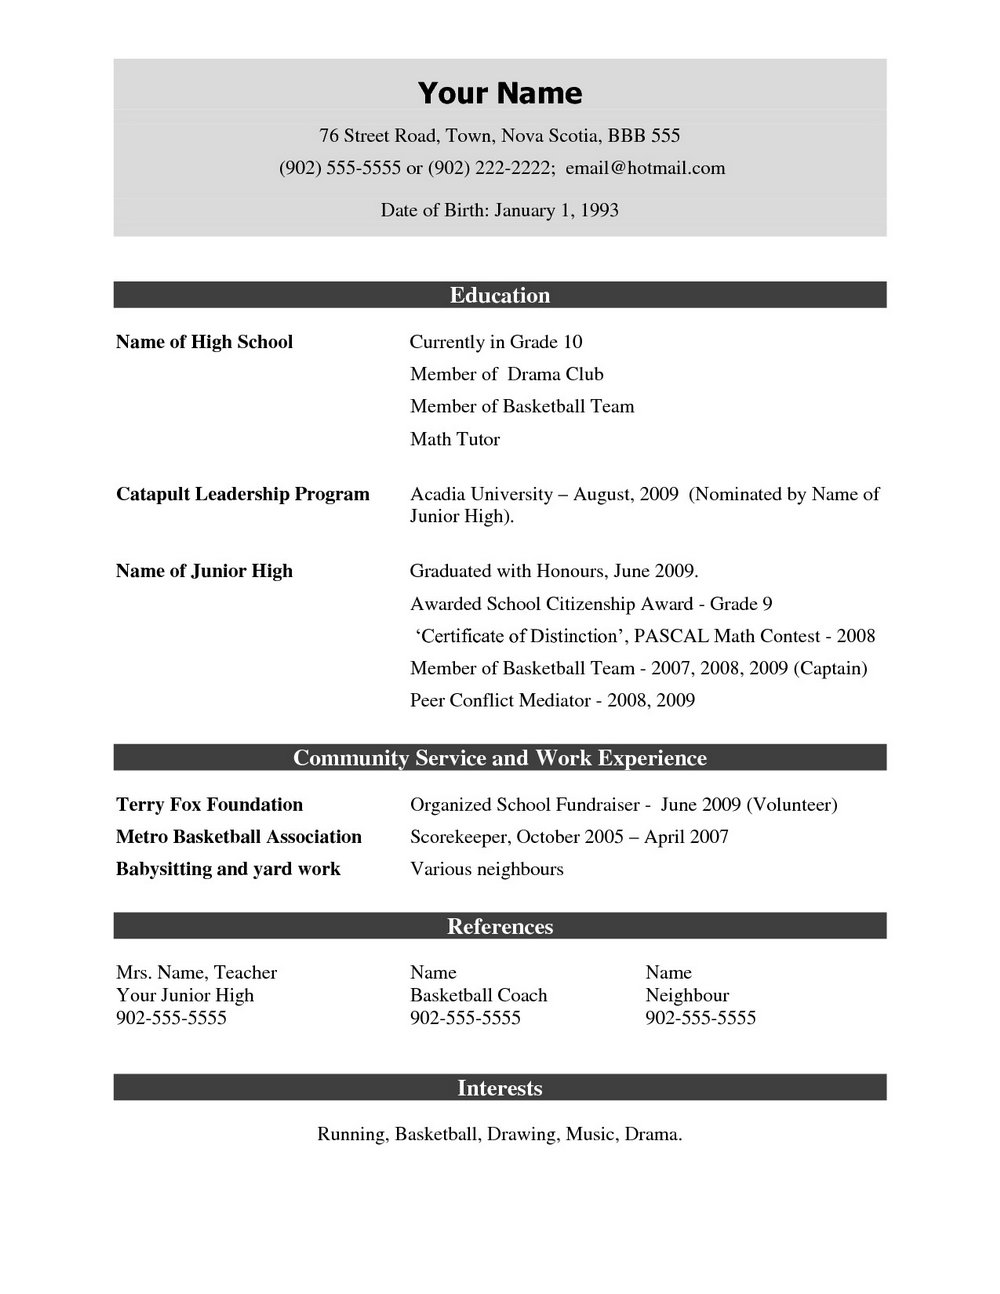 Latest Resume Format Doc File Download | Universal Network